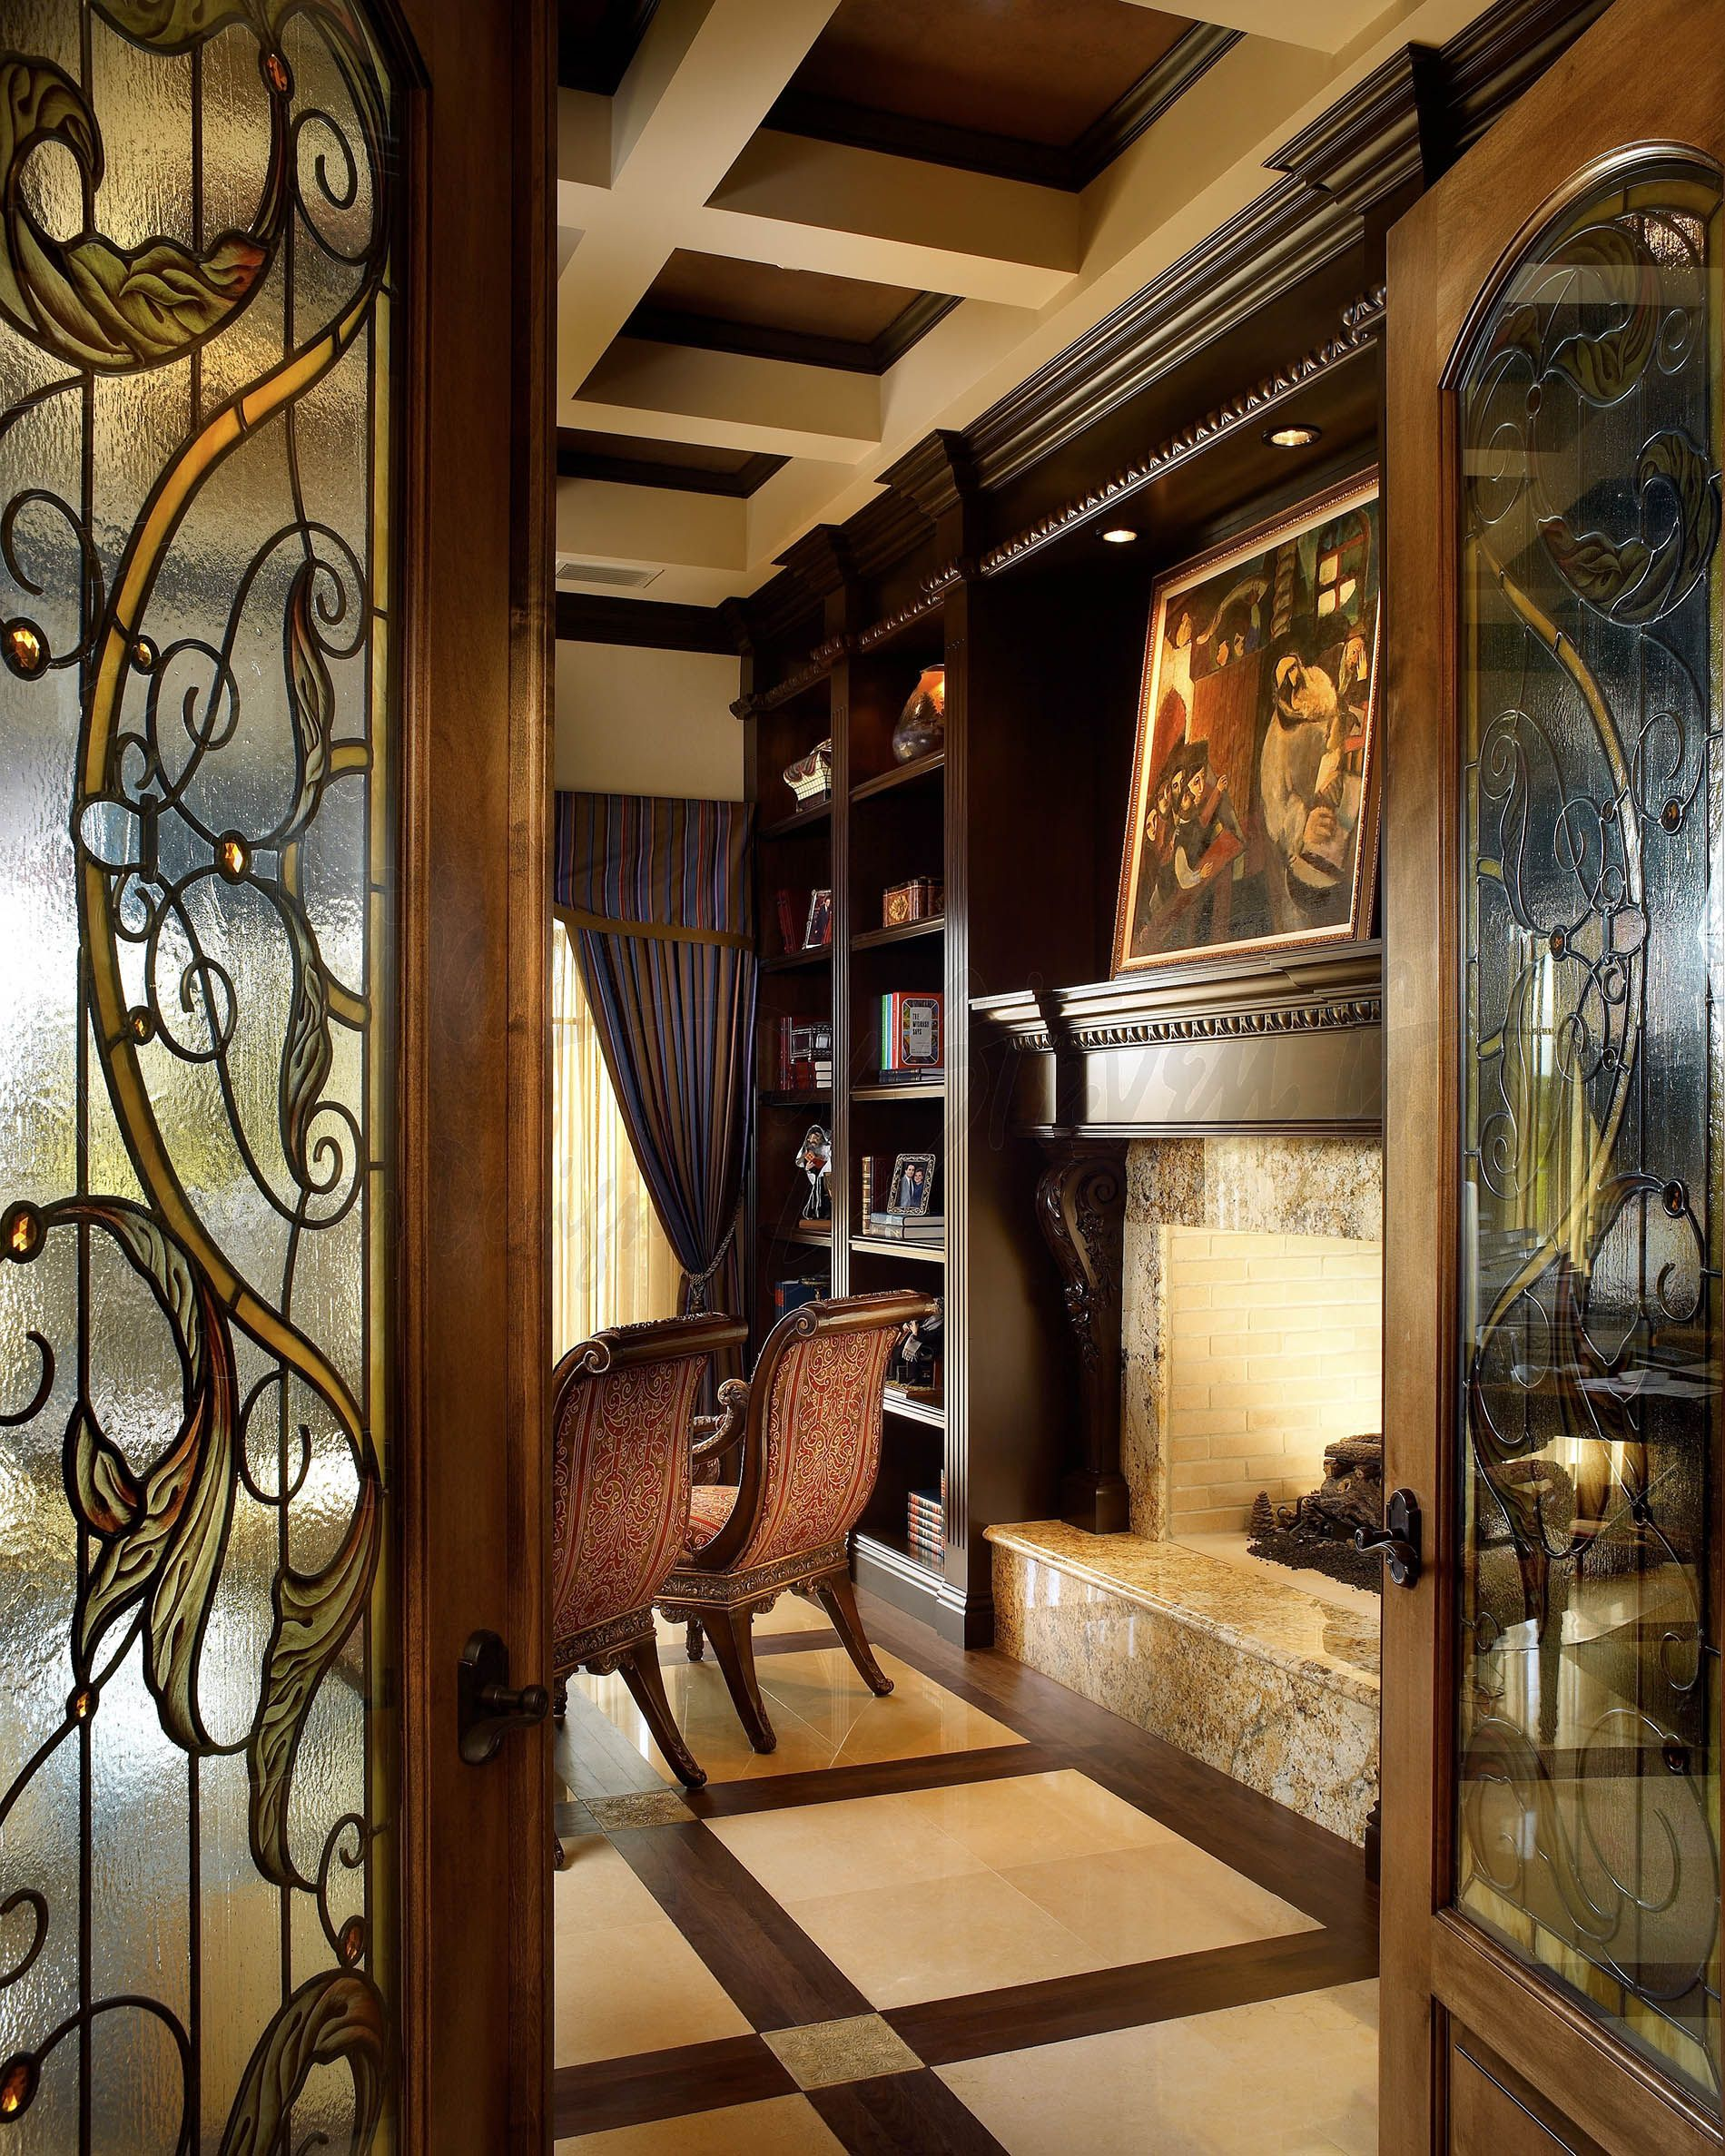 St Andrews | Traditional interior, Interior, Traditional